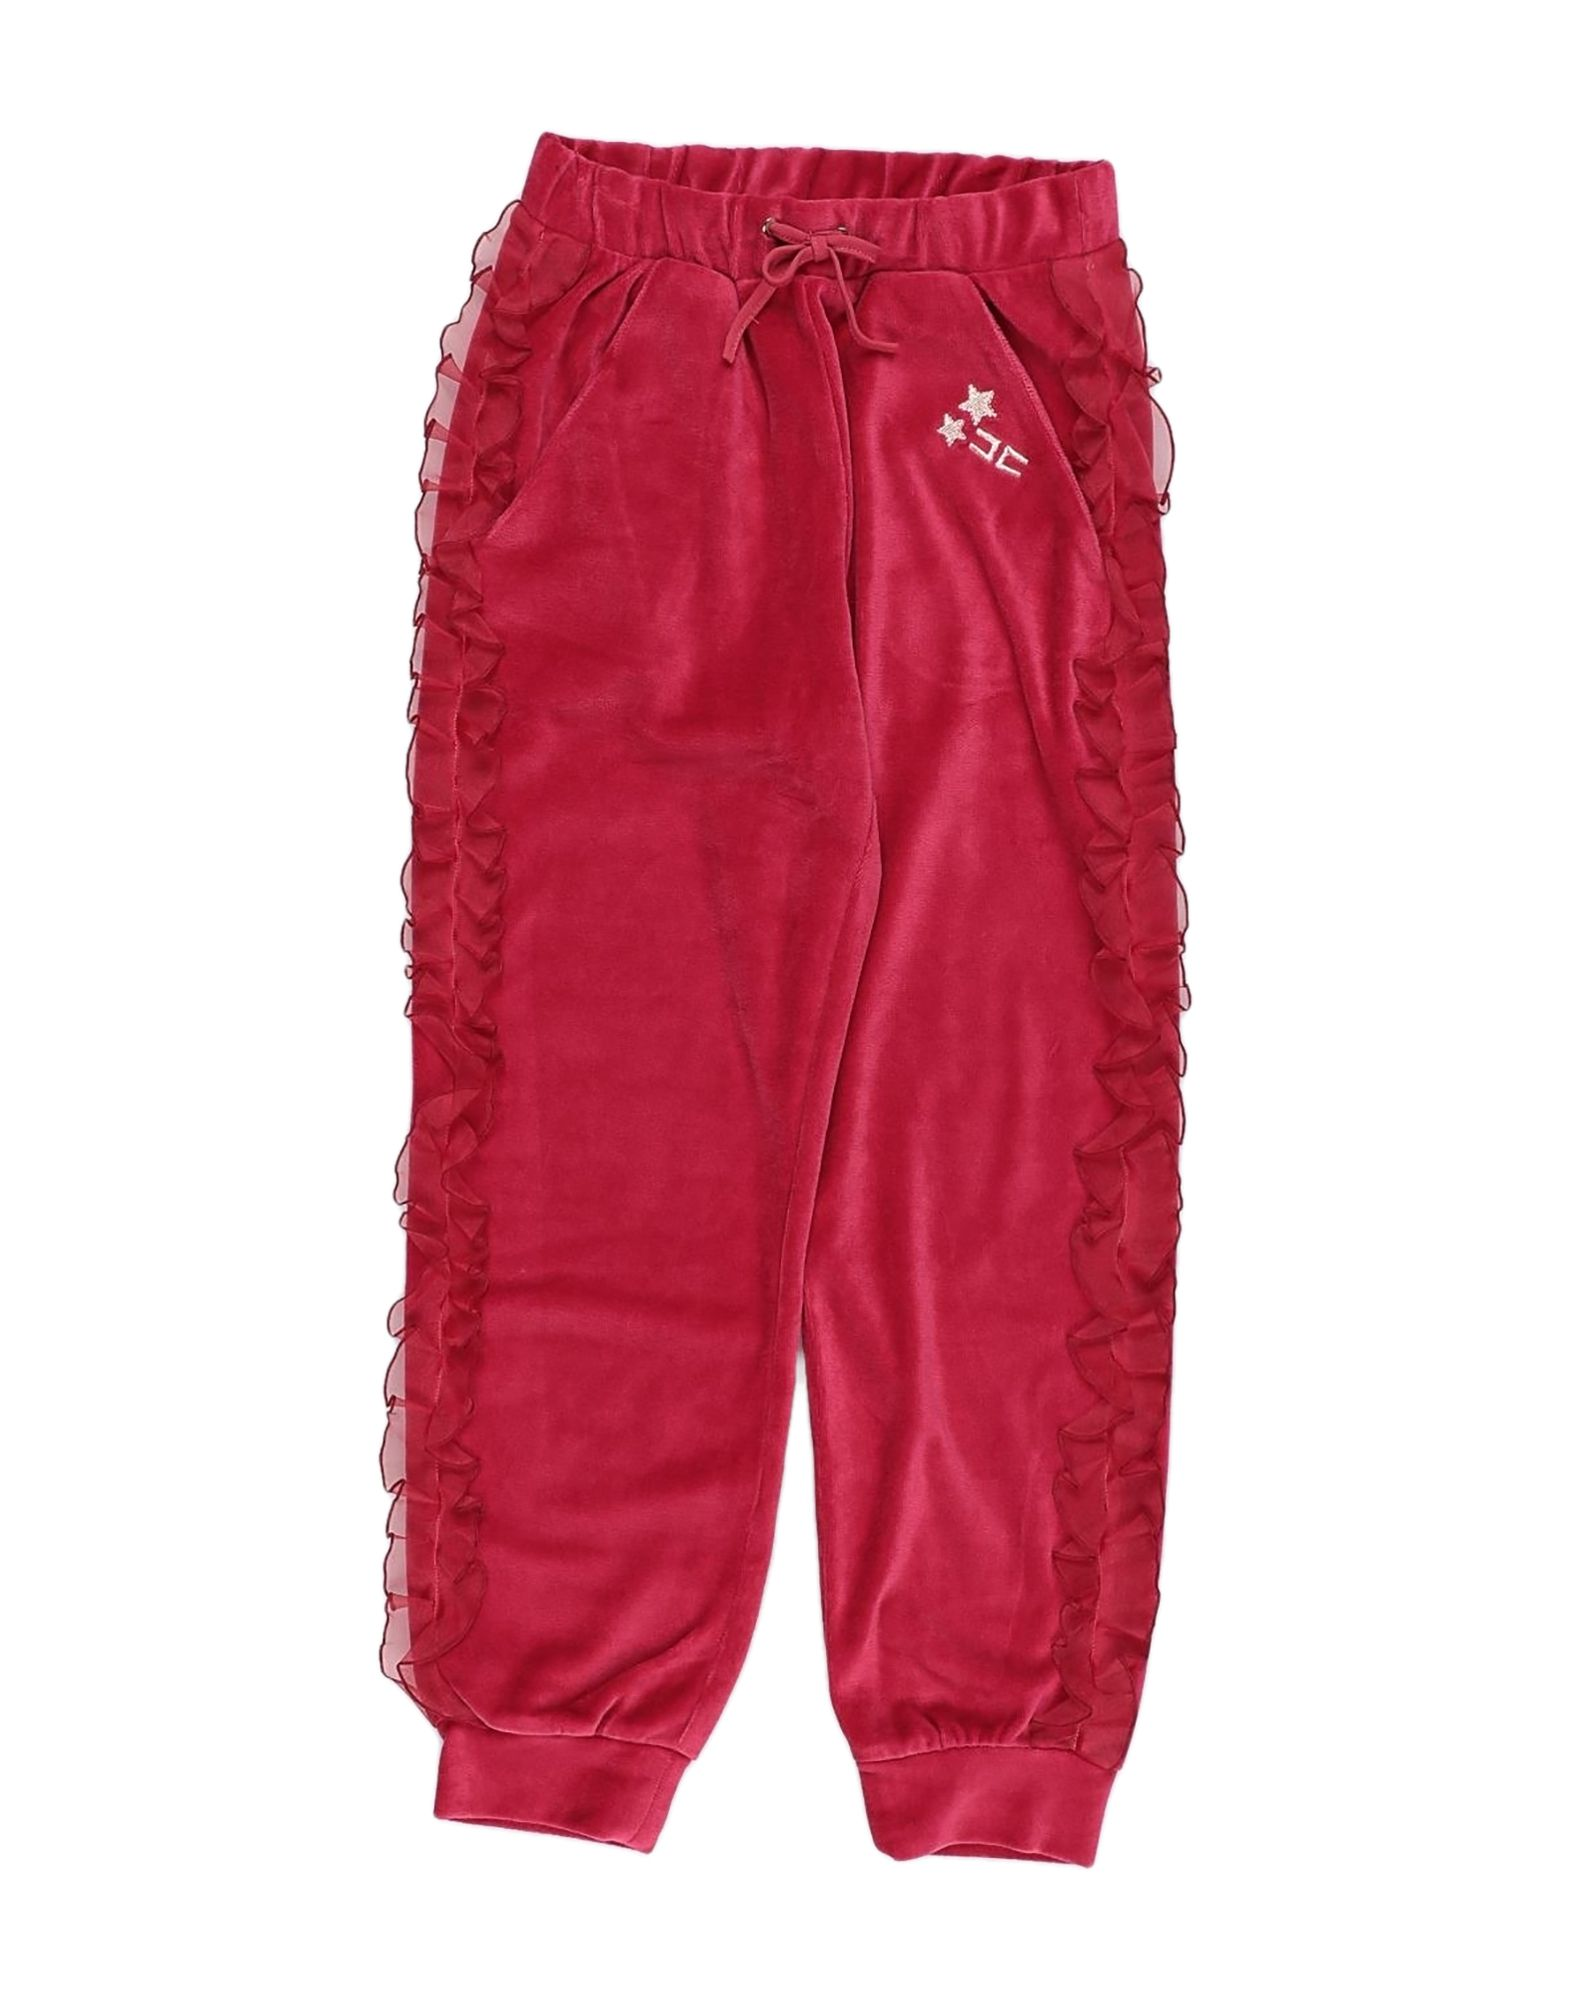 Elisabetta Franchi Kids' Casual Pants In Red